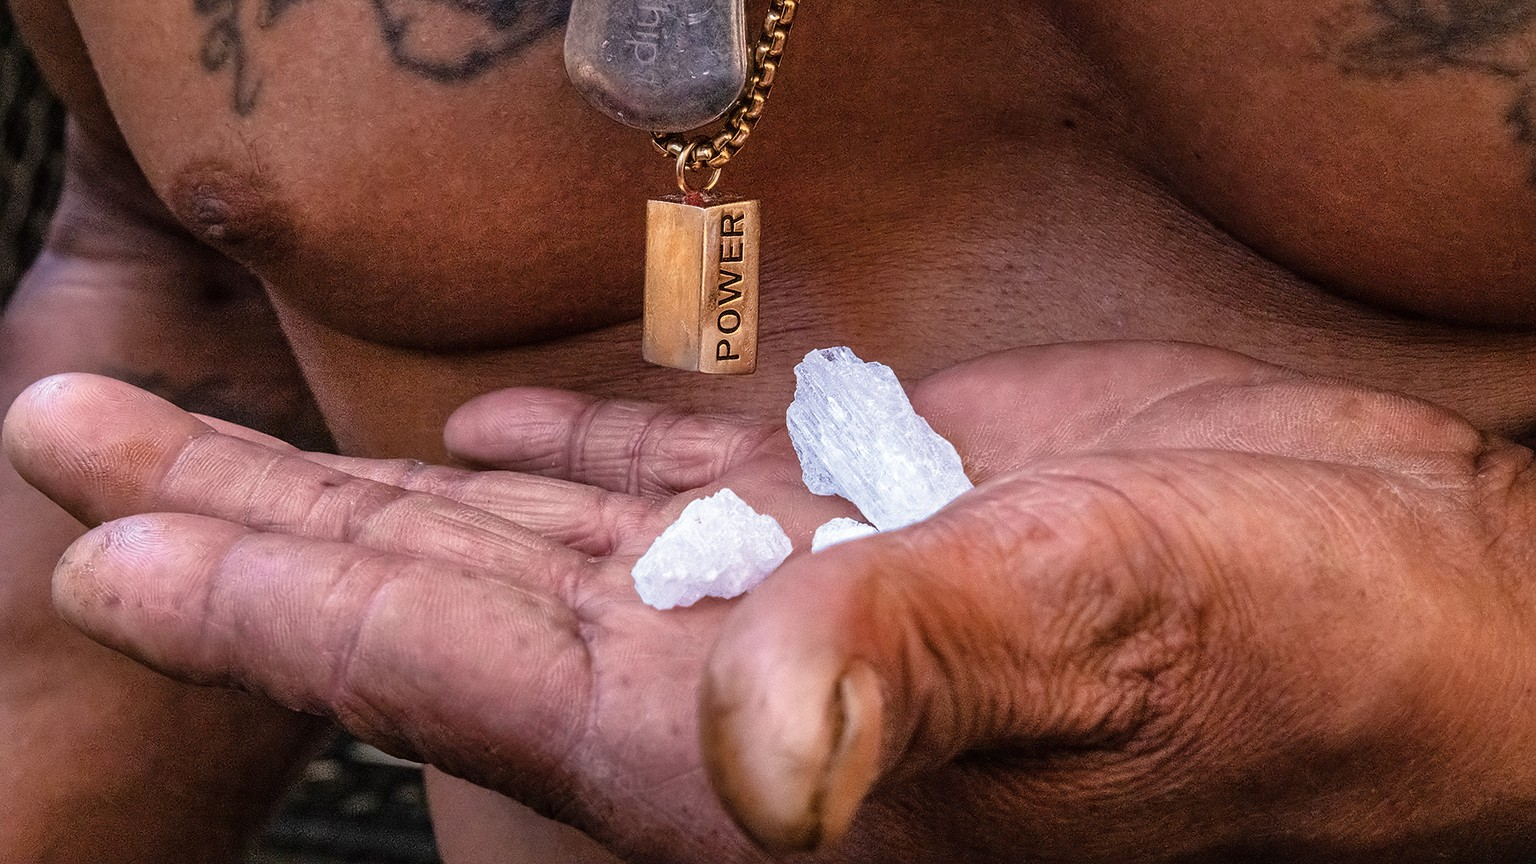 A New, Cheaper Form of Meth is Creating New Problems in America